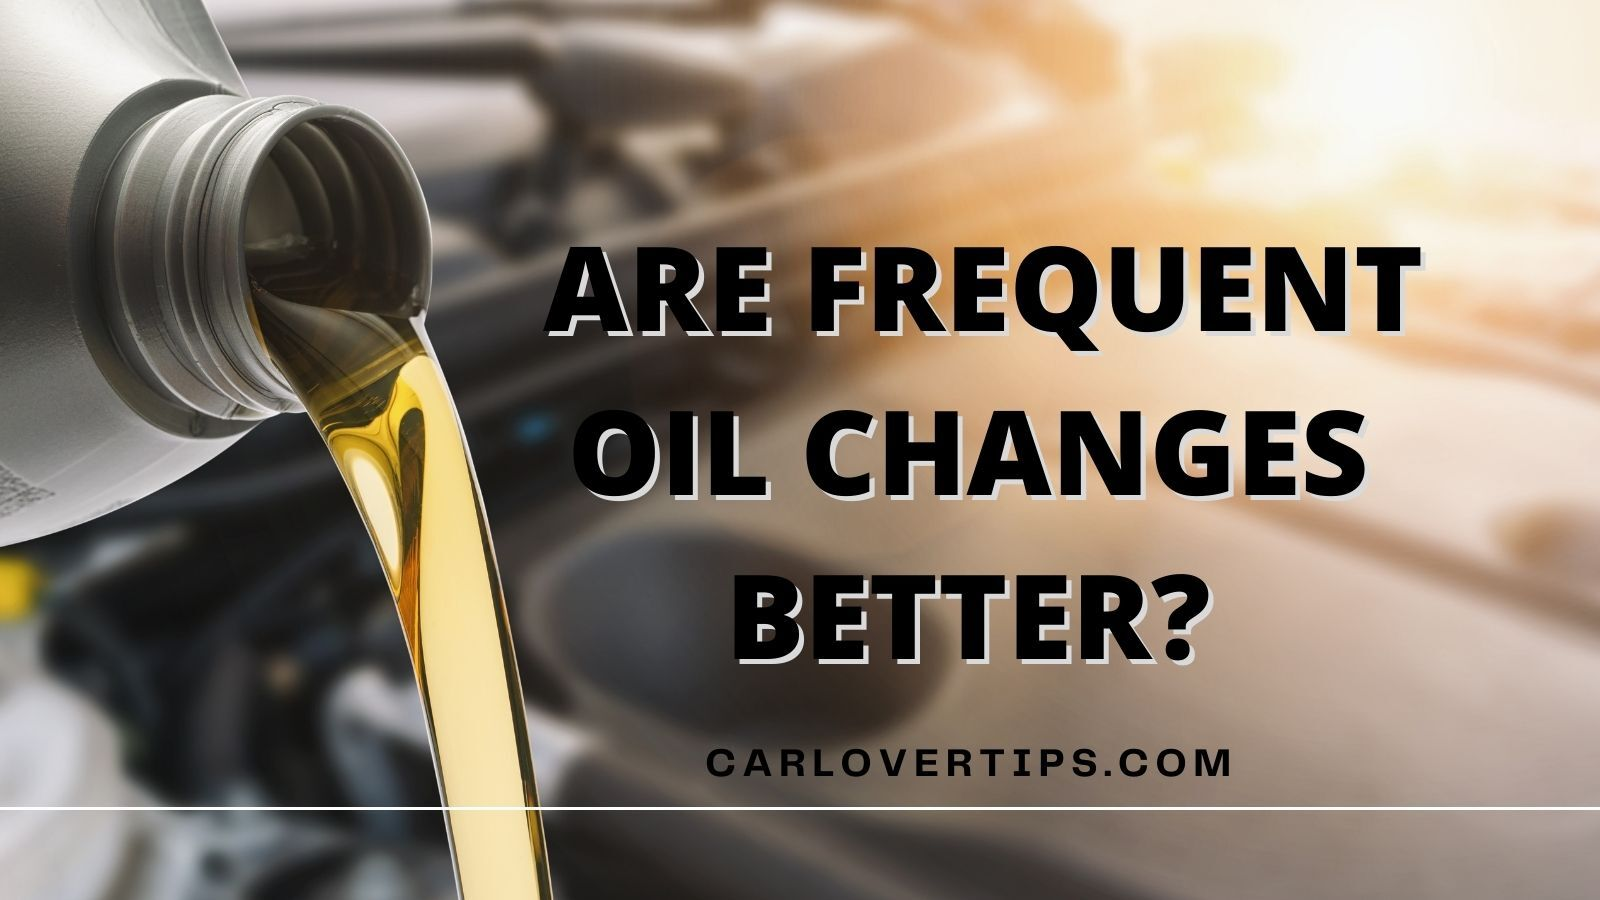 Are frequent oil changes better